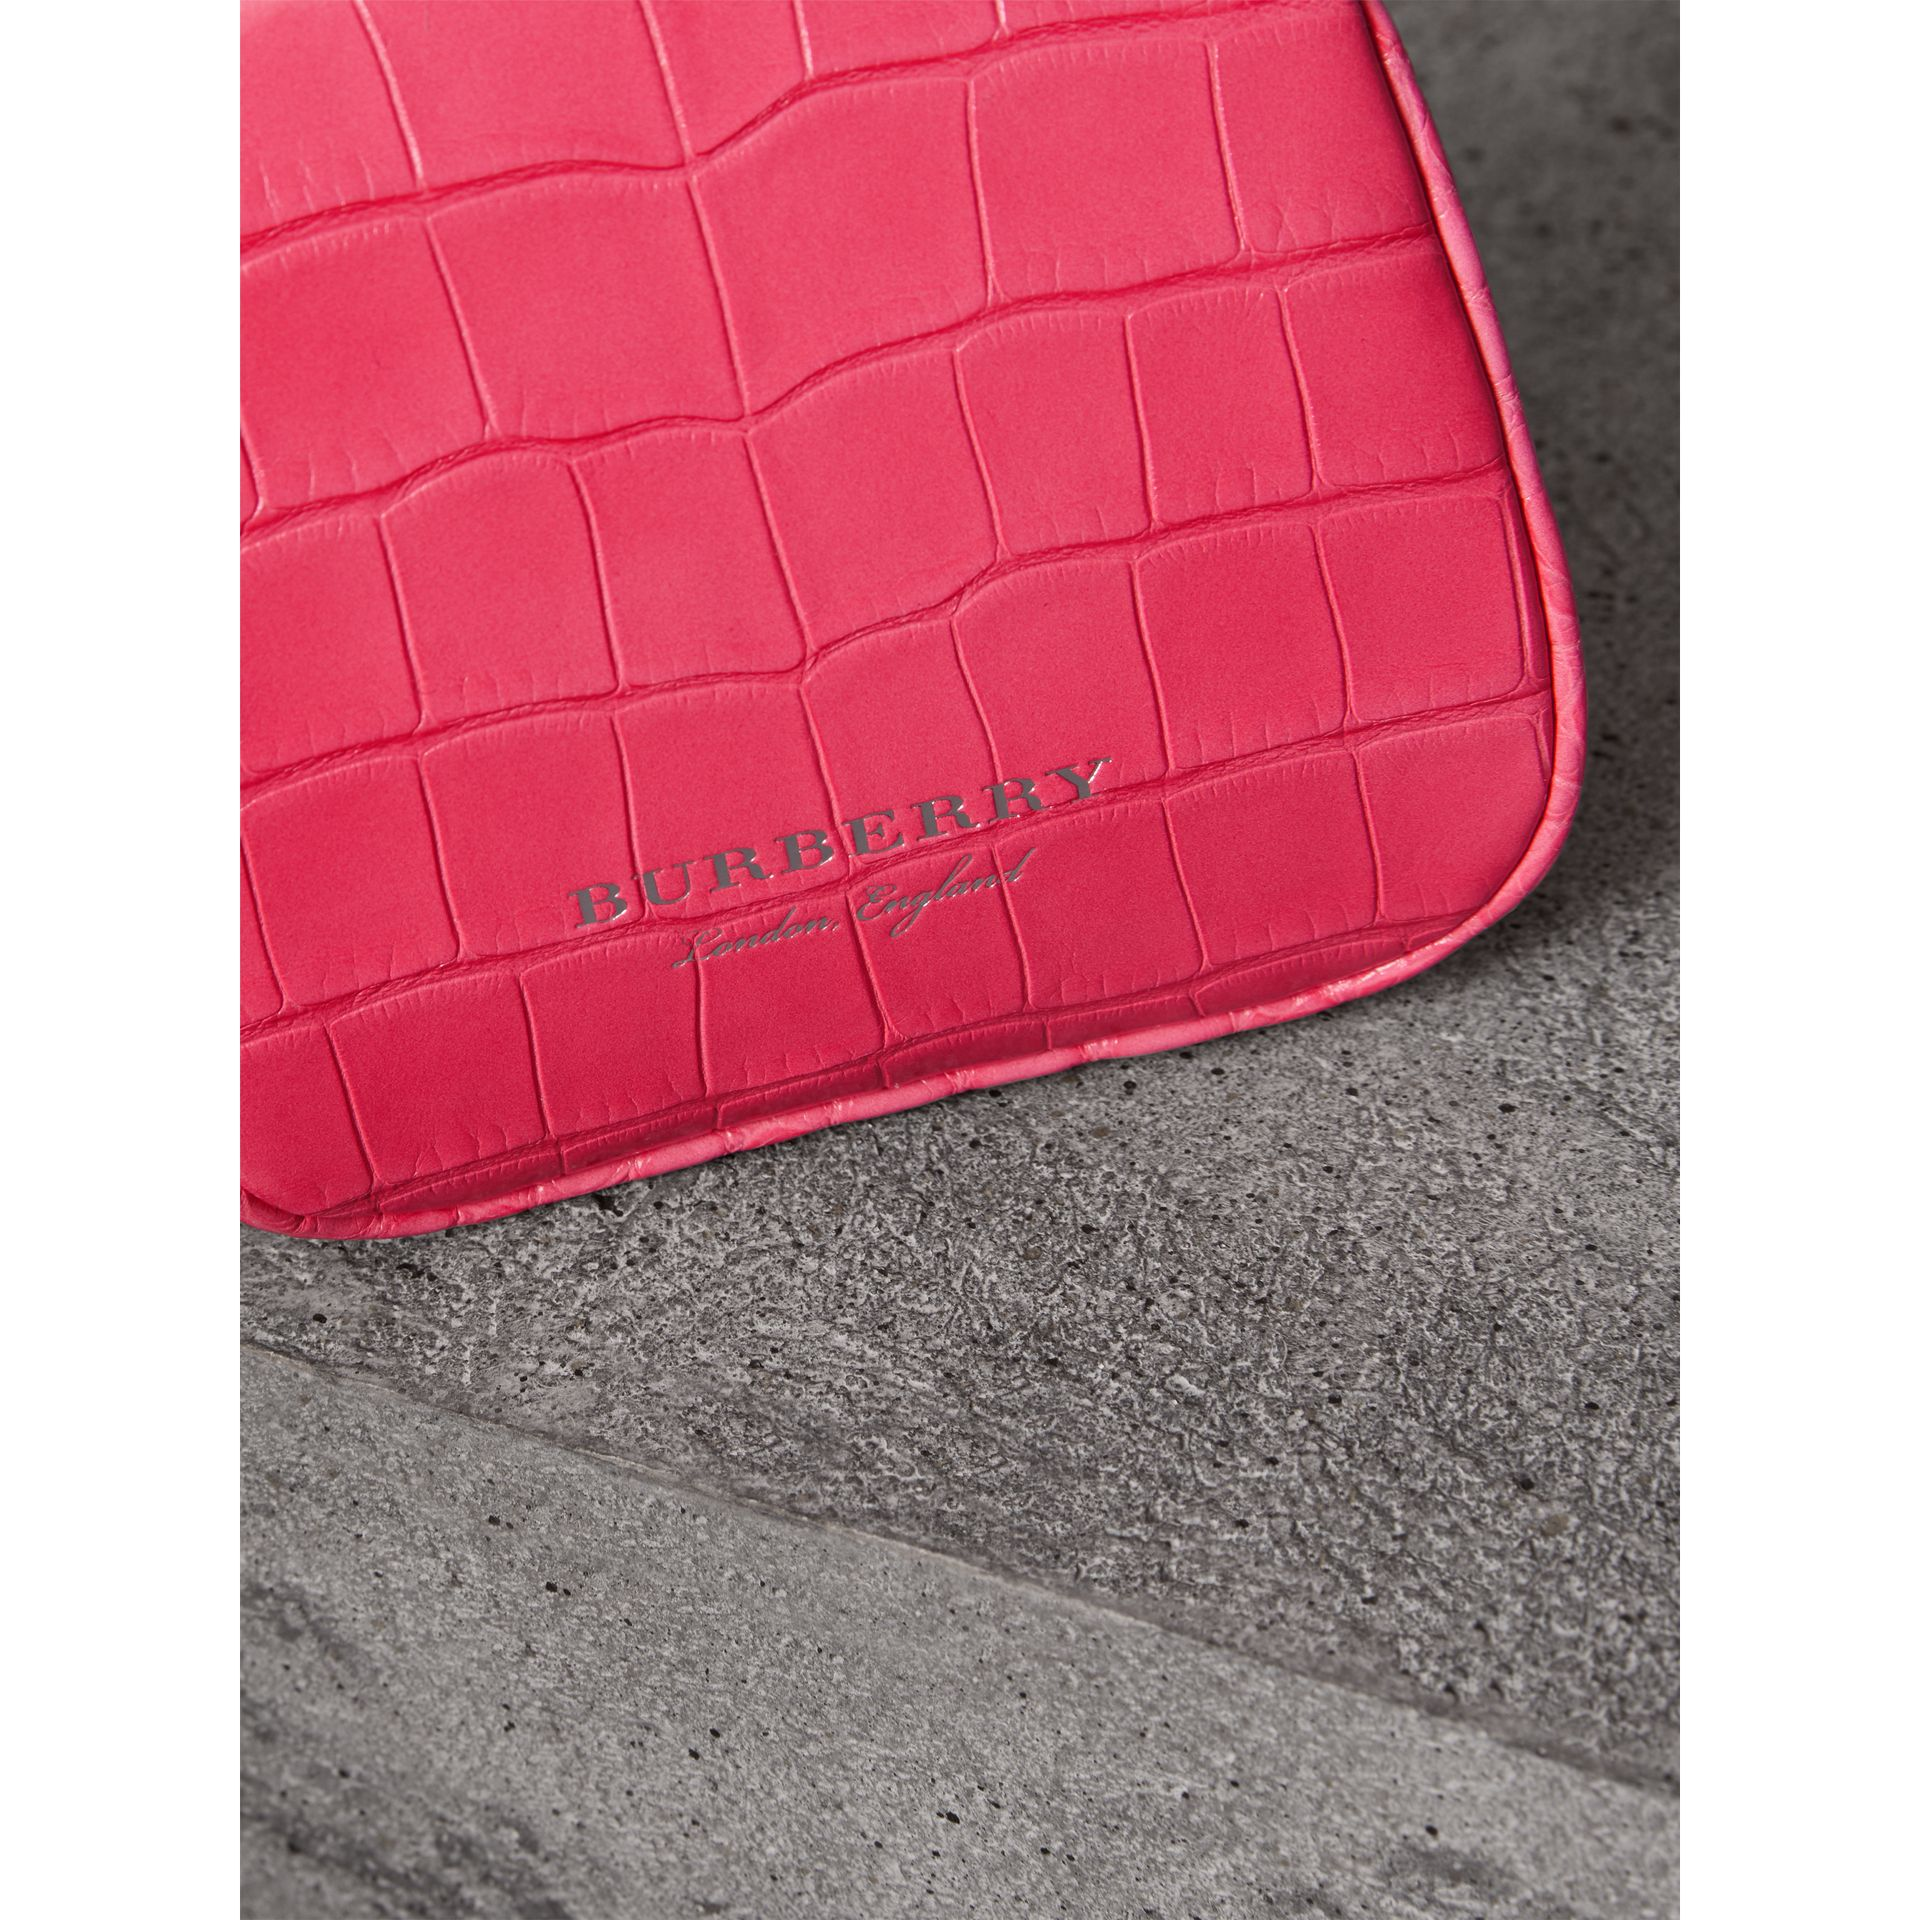 Mini Alligator Frame Bag in Neon Pink - Women | Burberry Canada - gallery image 1